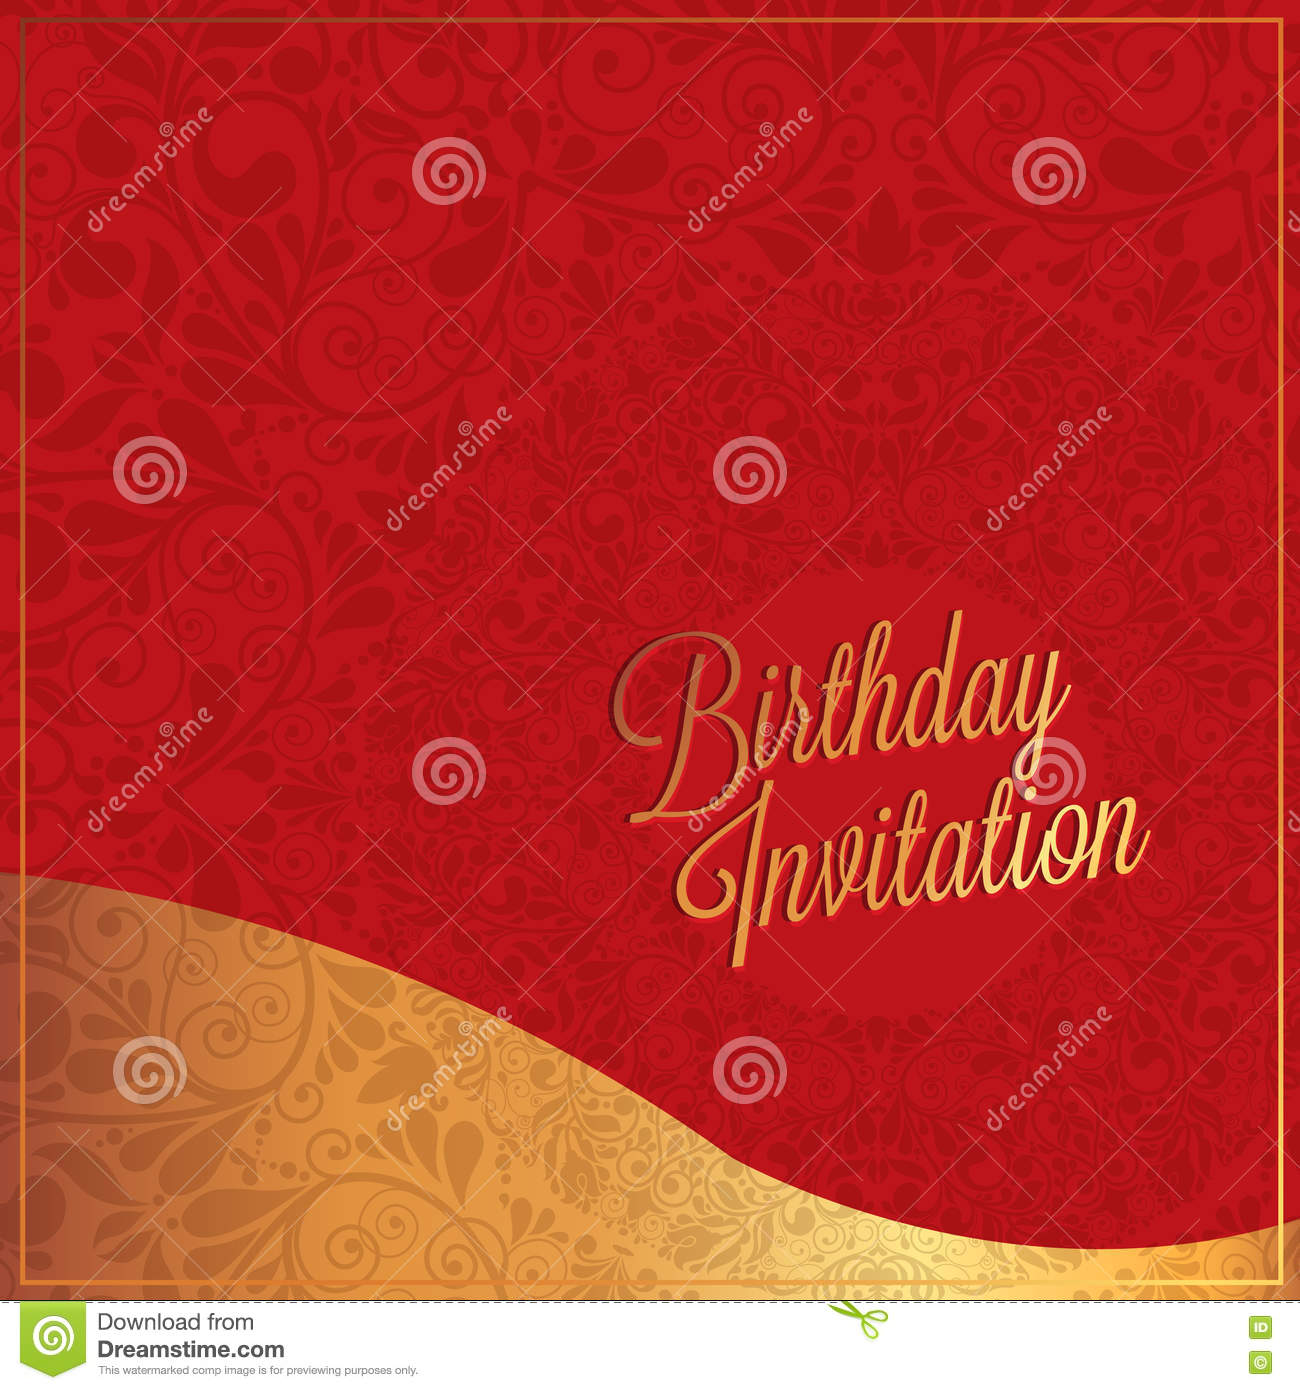 Birthday Card With Red Background Design Stock Vector Illustration Of Empty Helium 69864058